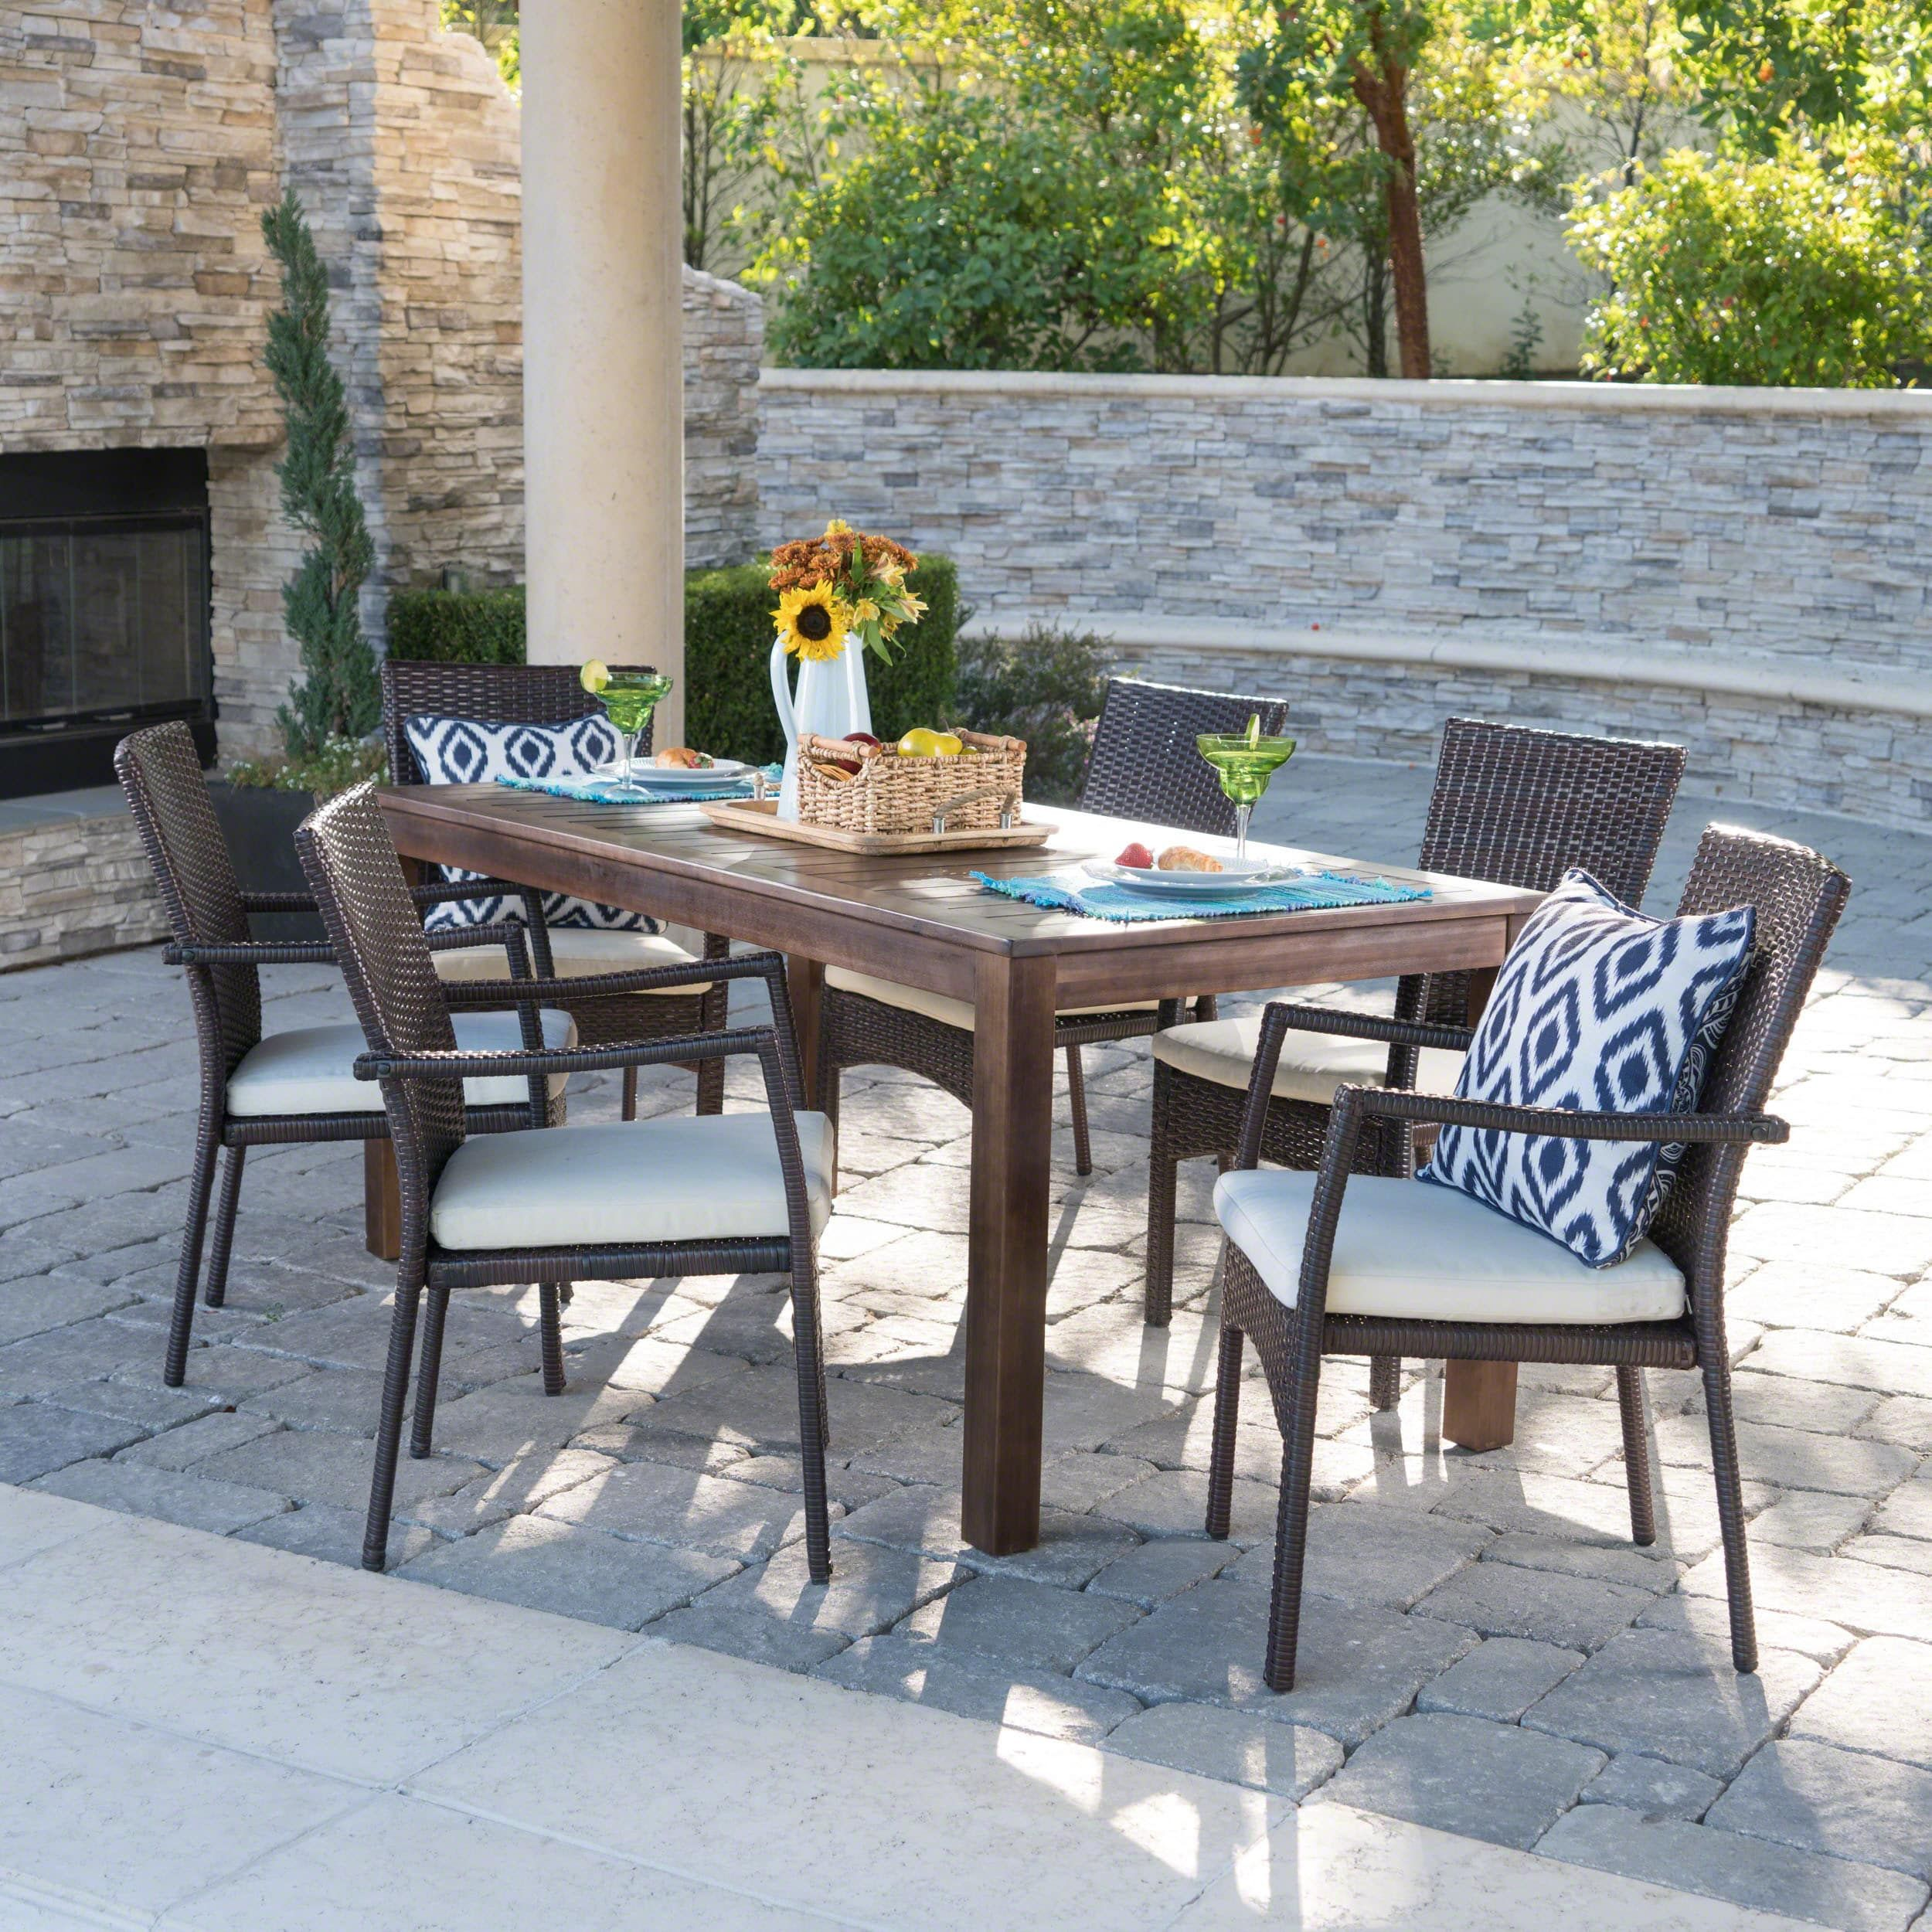 Geelong Outdoor 7 Piece Rectangle Aluminum Wicker Wood Dining Set With Cushions By Christopher Knight Home Dark Brown Brown Creme Outdoor Dining Set Wicker Dining Chairs Outdoor Dining